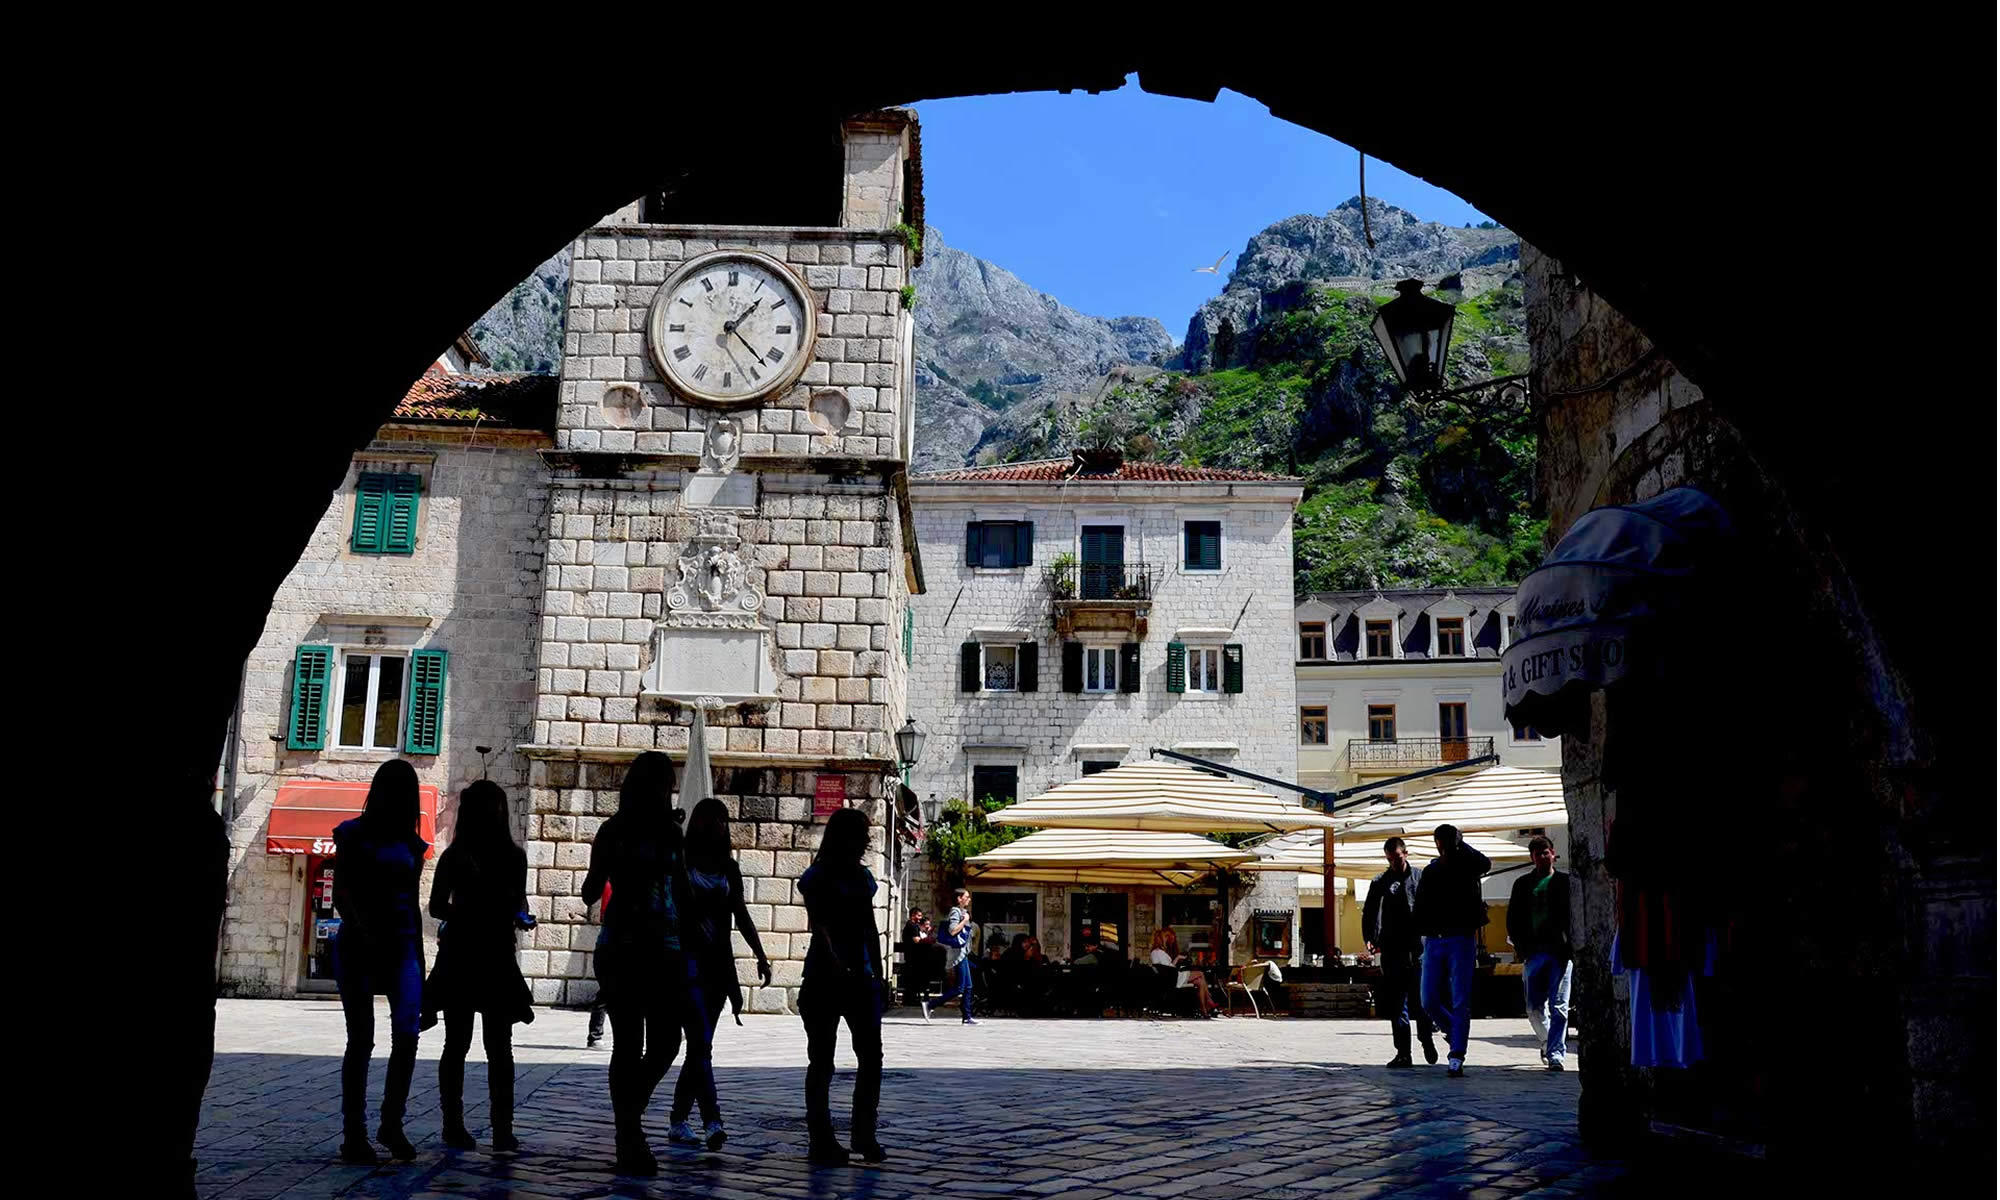 Young women, in silhouetted form, walk through the cobbled streets of the Old Town in Kotor, Montenegro.